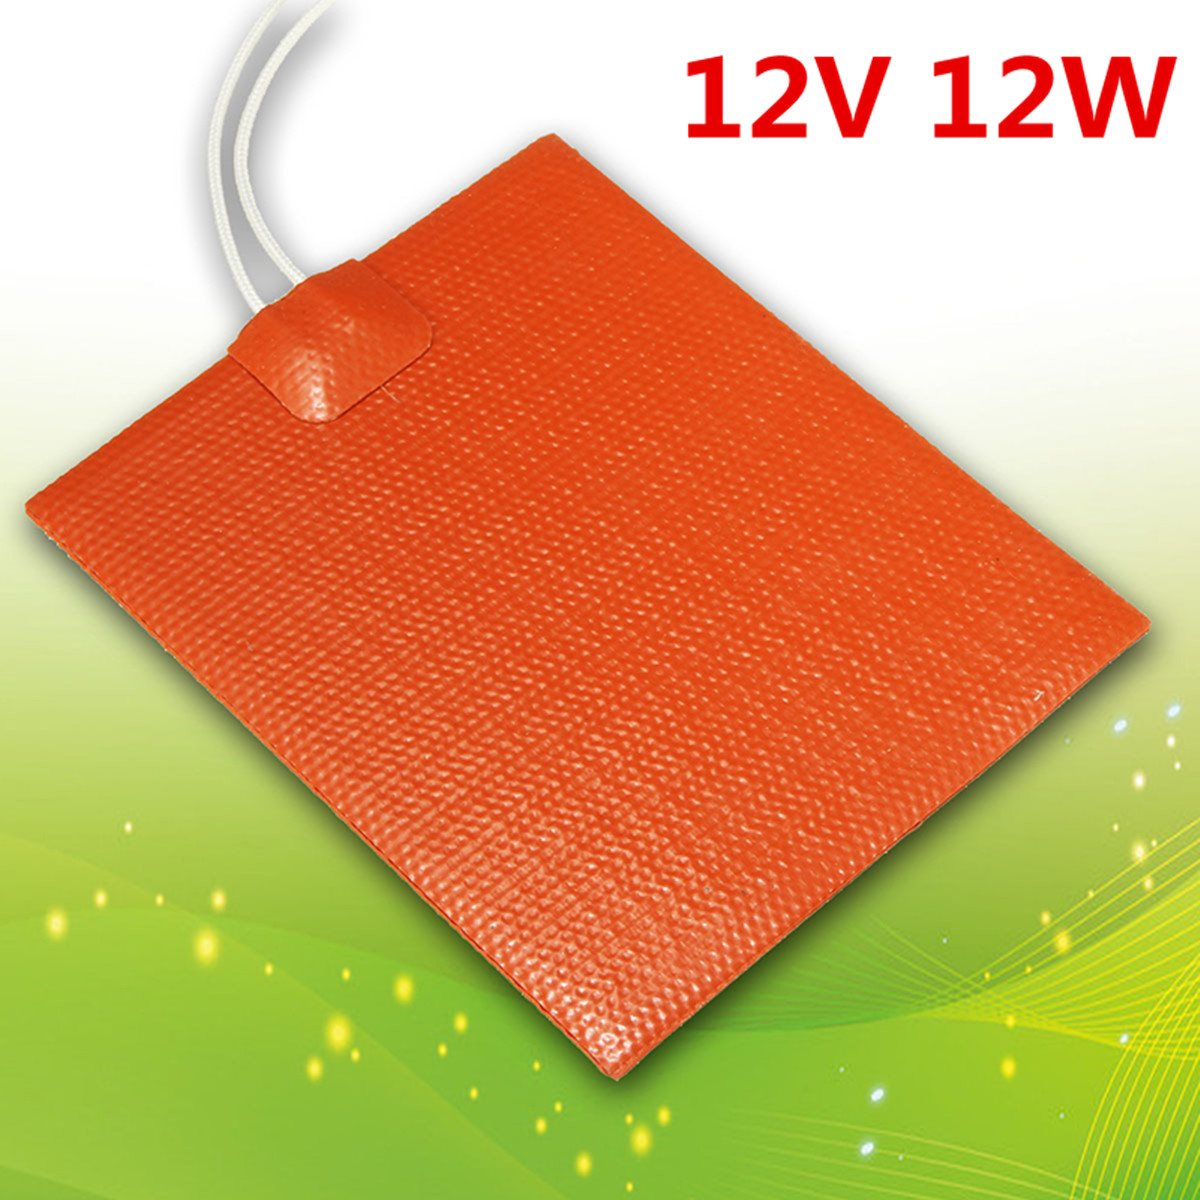 12x10cm 12V Hive Electric Heater Plate Save Honey Beekeeper Bee keeping Equipment 12W new free shipping one type honey flow hive 20 pcs plastic frame honey bee hive honeycomb free installation hive flow hive frames